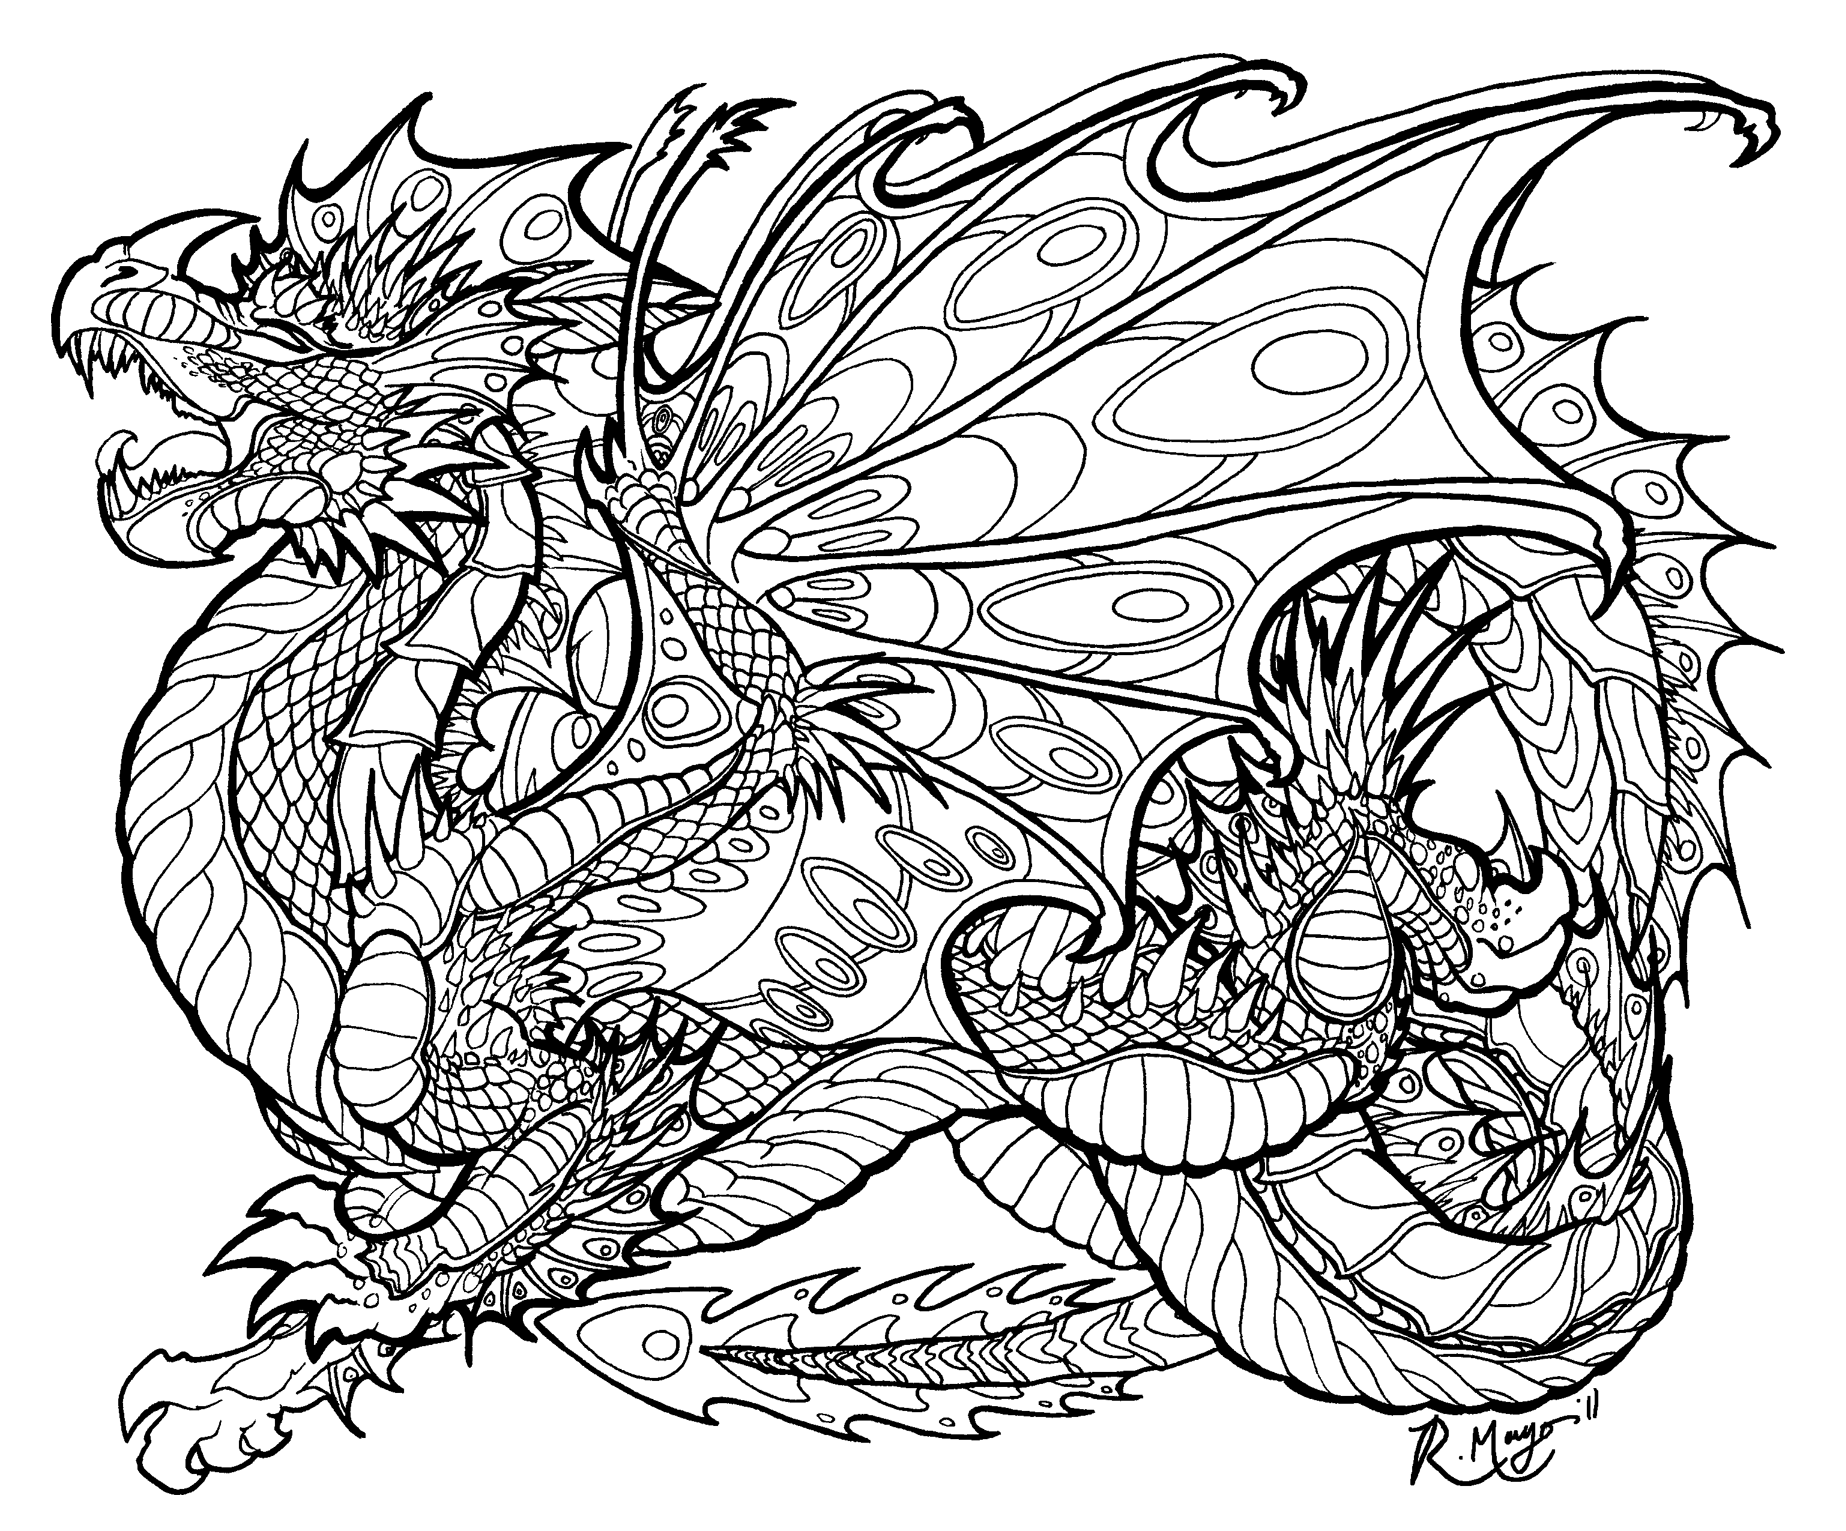 malachite sentinel coloring page by - Dragon Coloring Pages For Adults